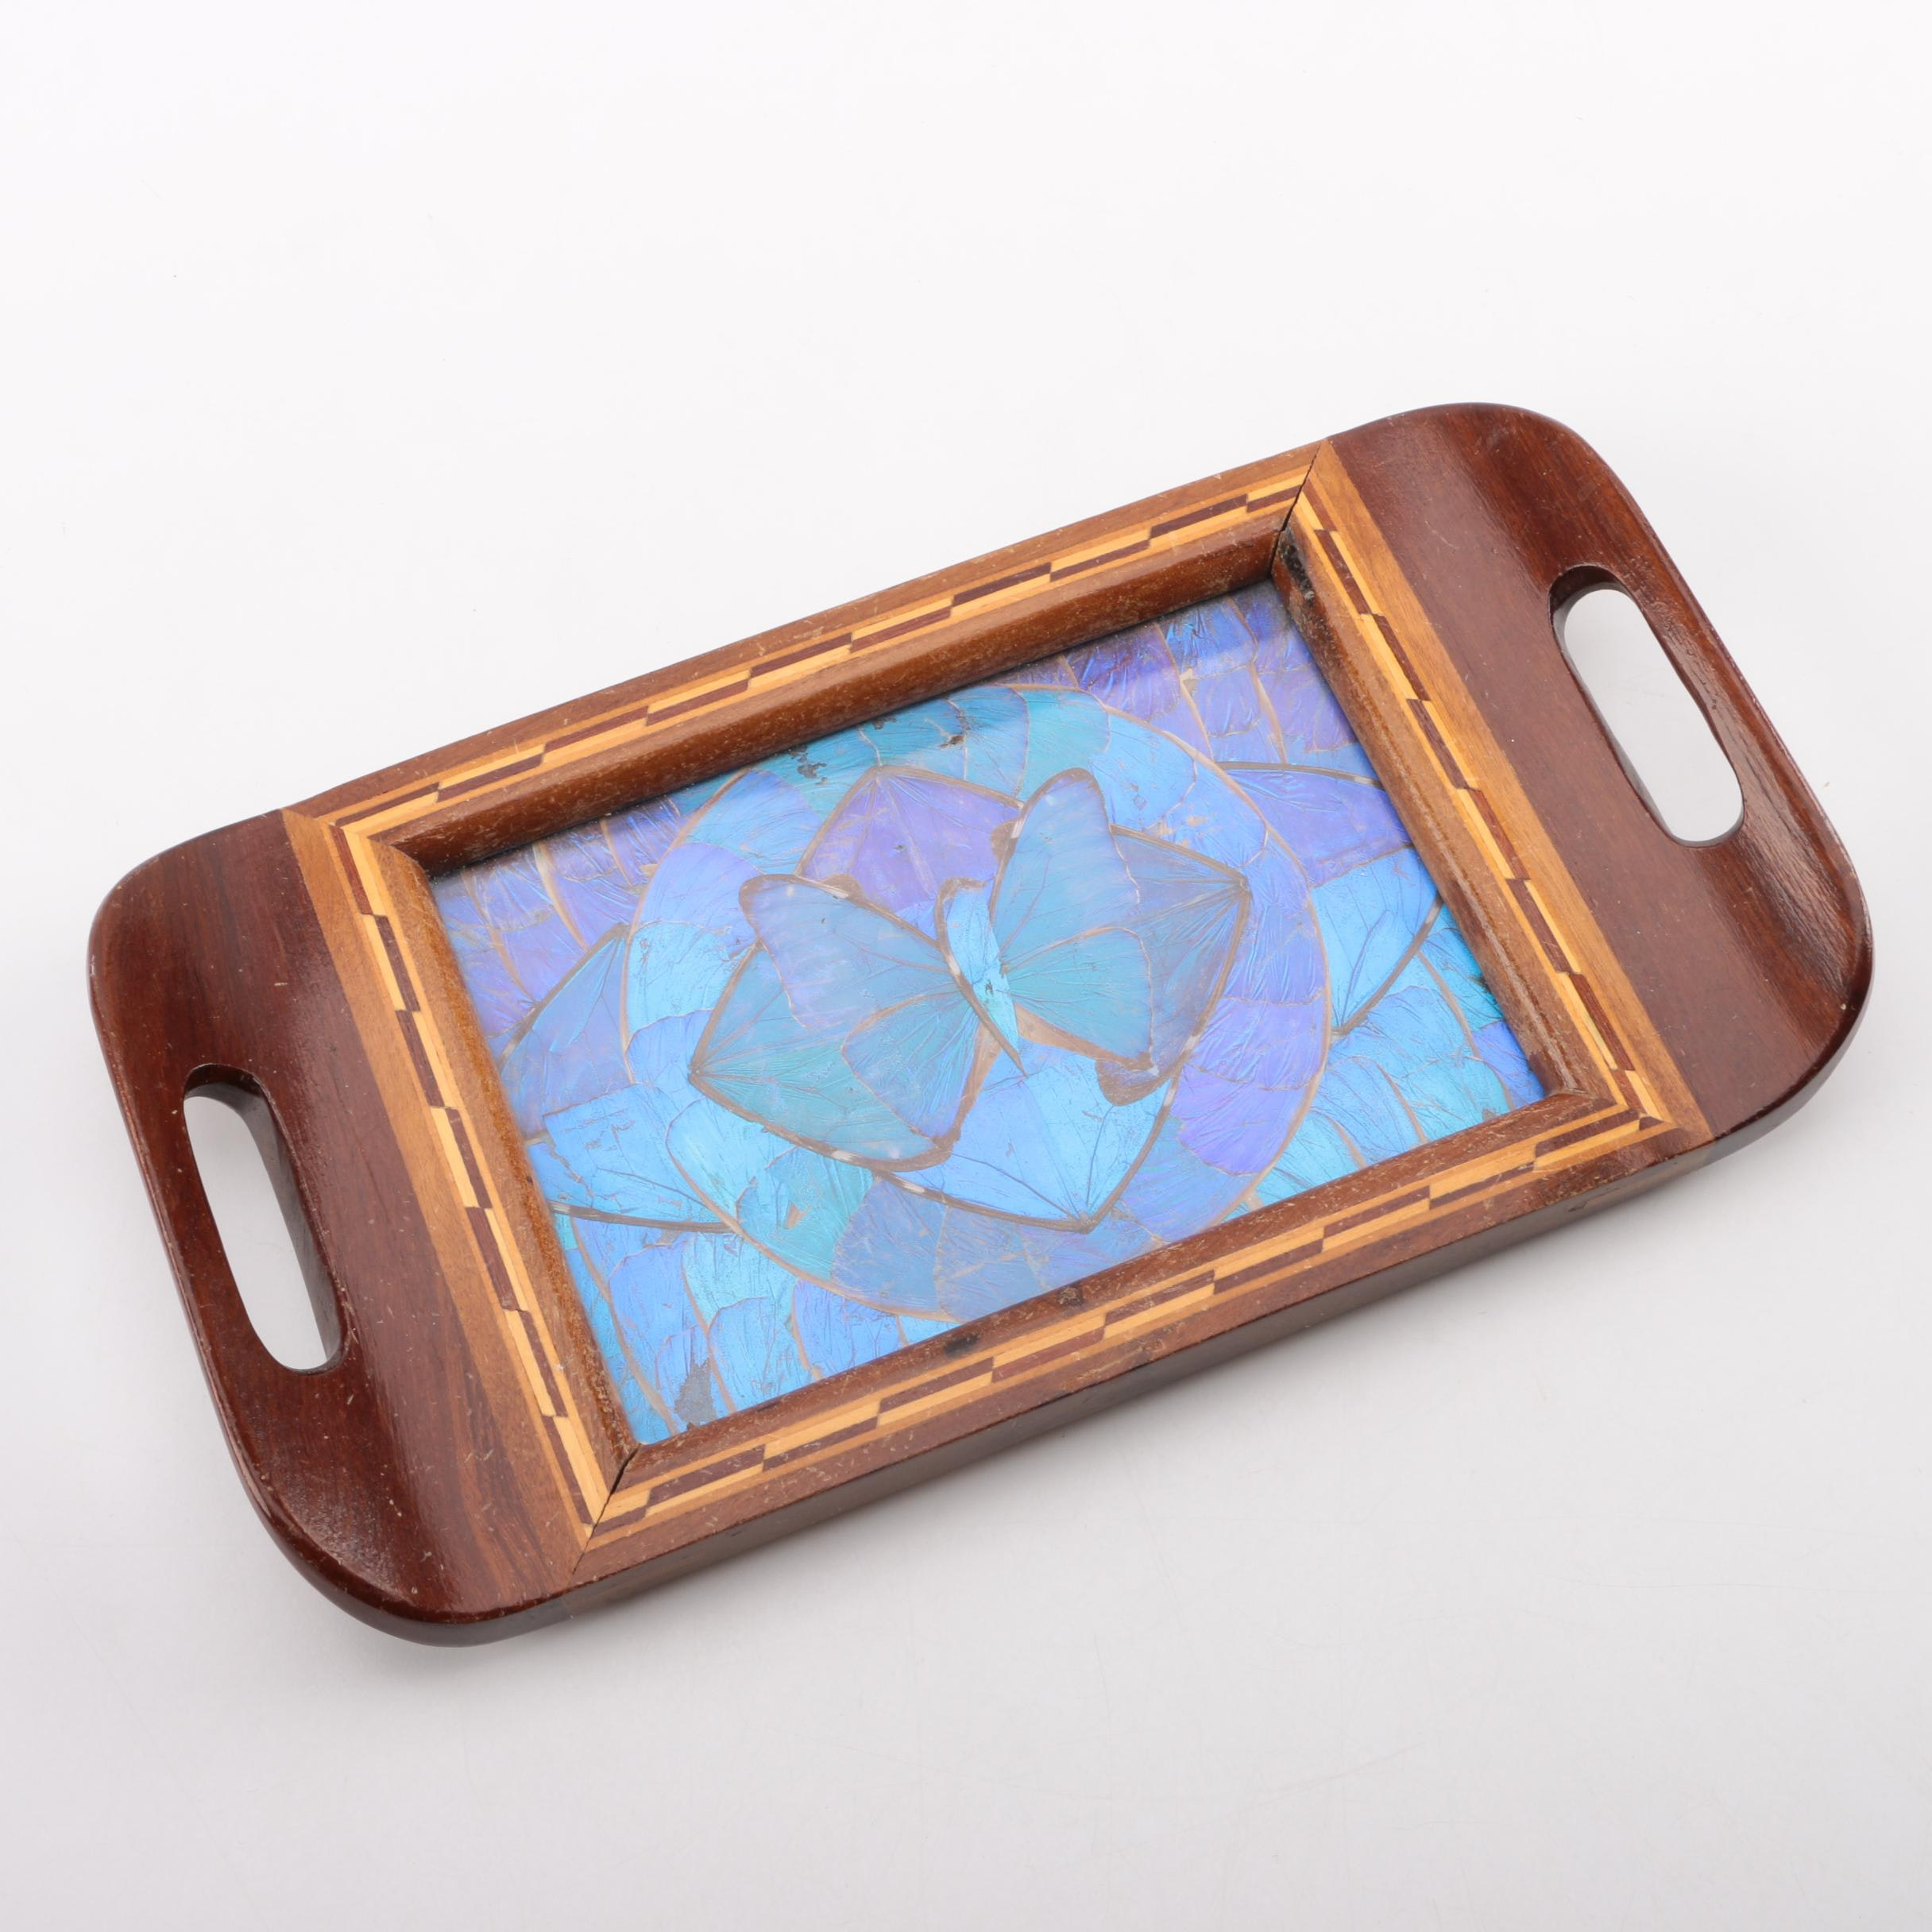 Decorative Serving Tray with Butterfly Mosaic